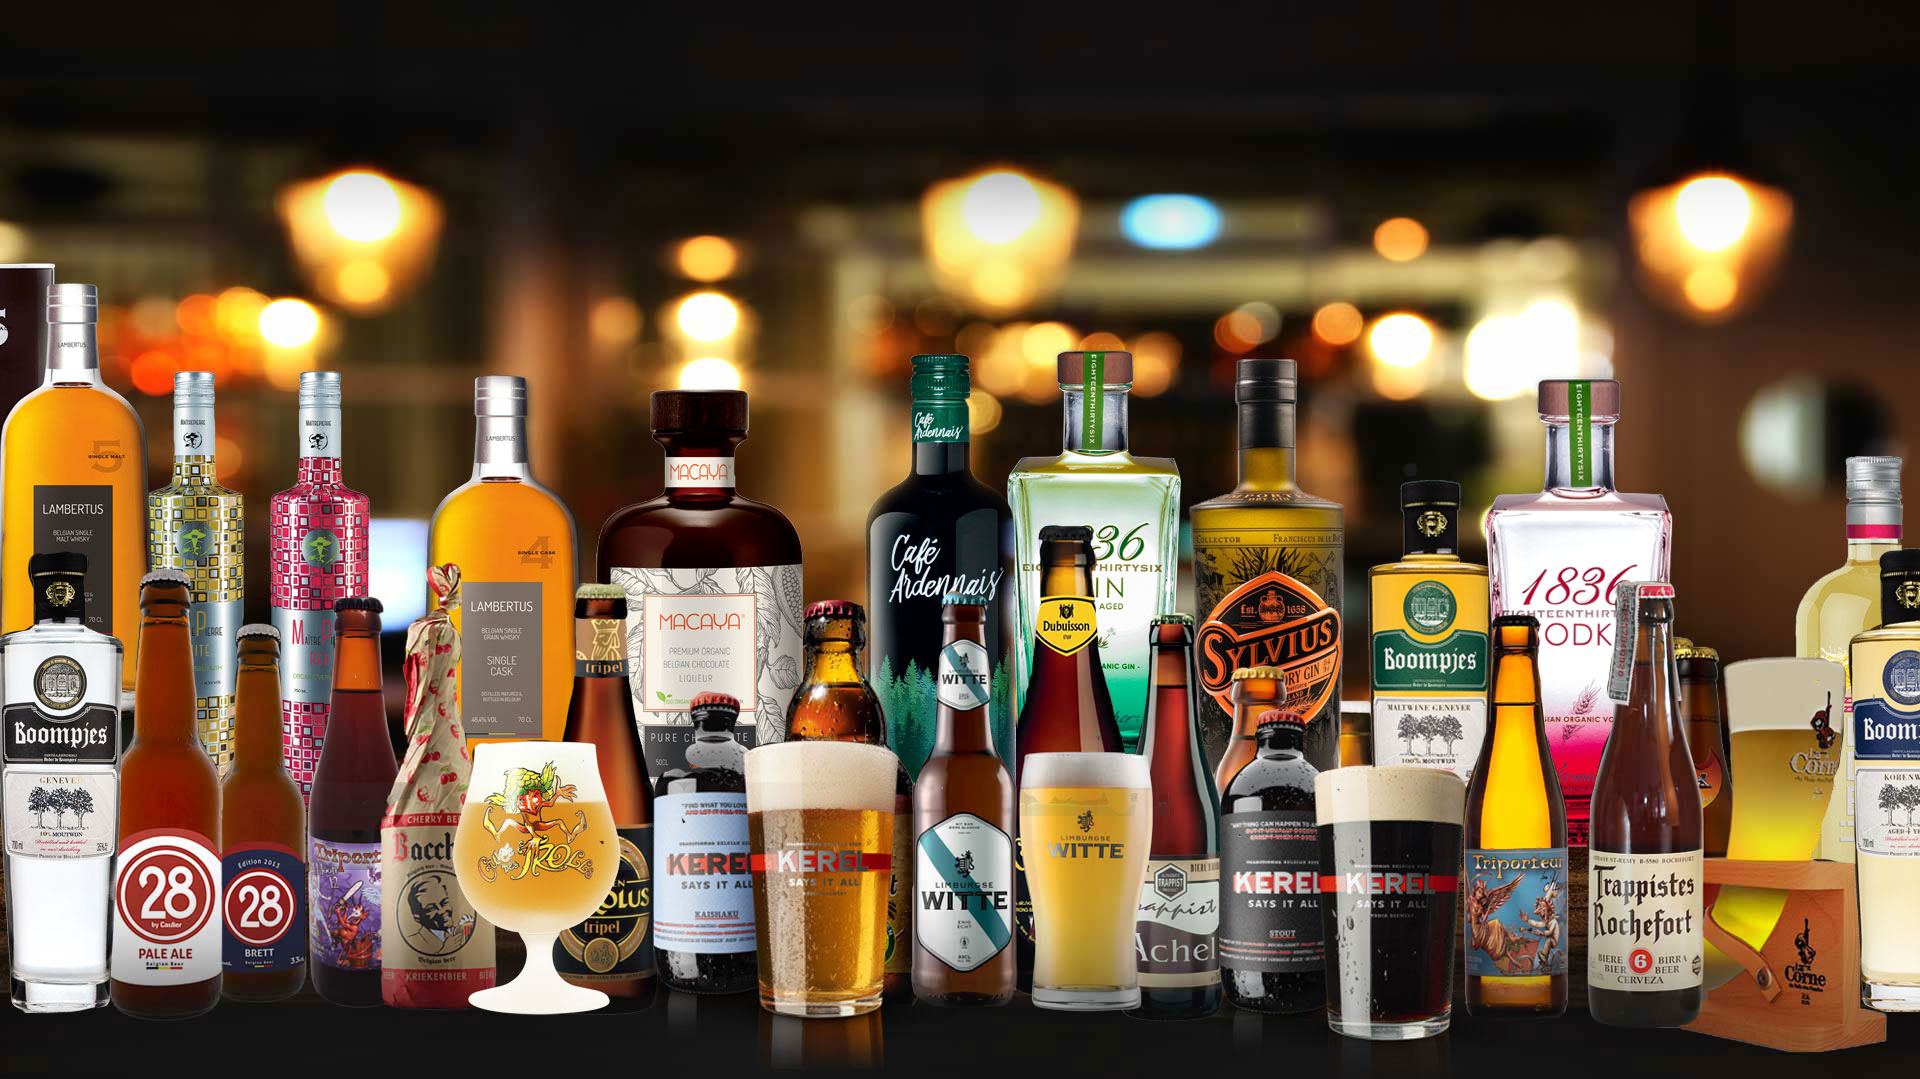 belgian beers and spirits wholesale in Thailand